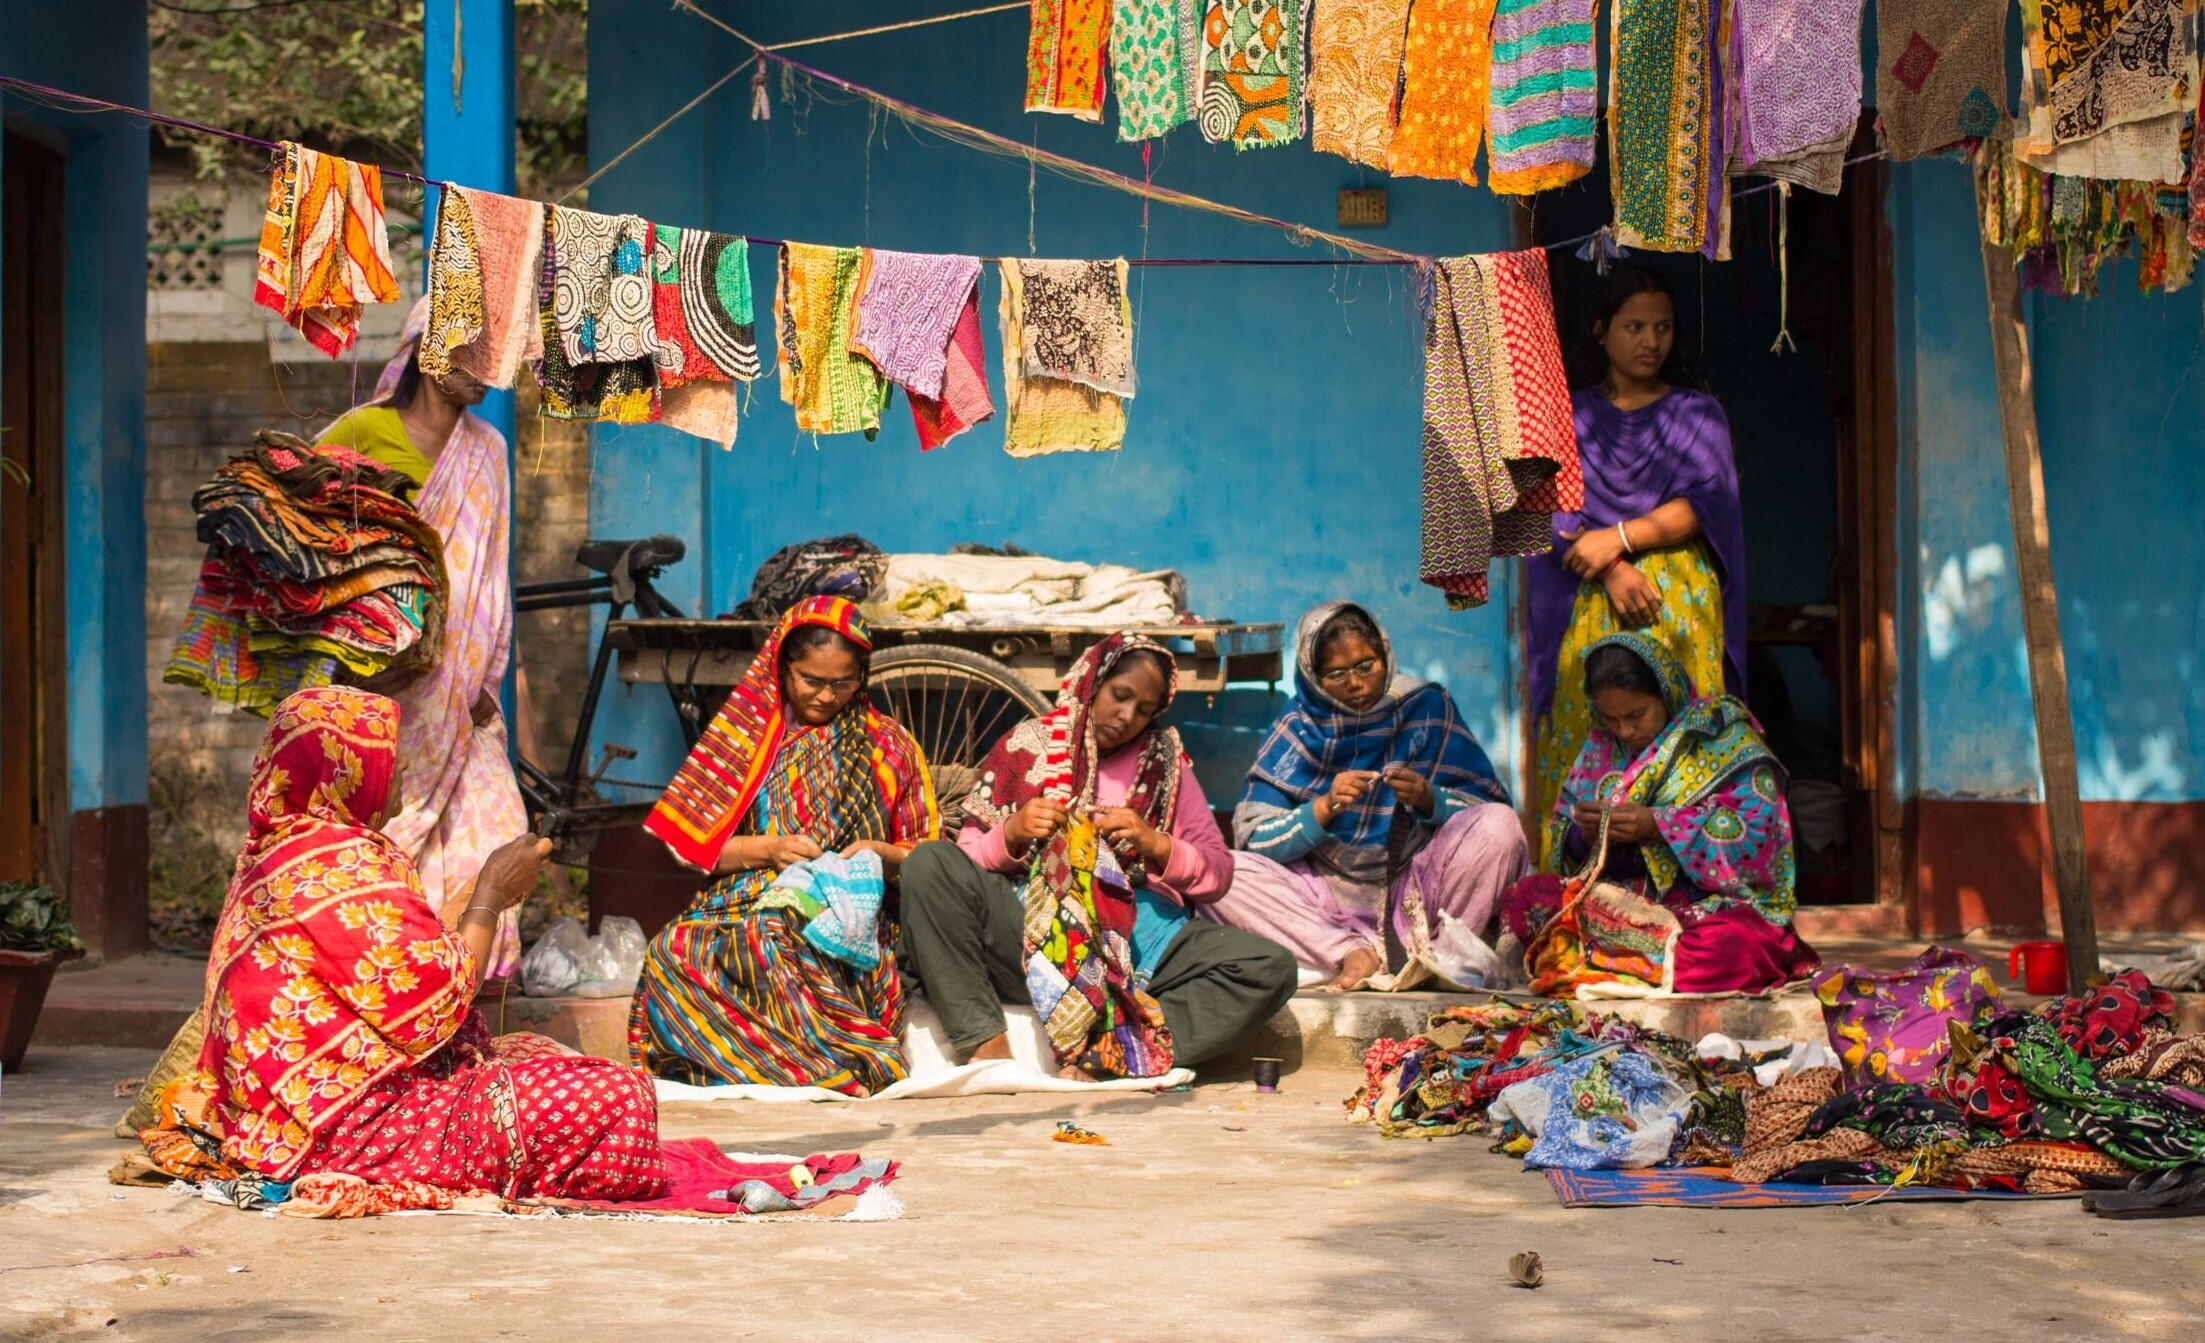 A group of artisans from the Hajiganj Handicrafts crochet unit sit outside their workshop stitching blankets from recycled saris in 2018. These artisans sold many blankets through Ten Thousand Villages.  (Photo courtesy of  Ten Thousand Villages)